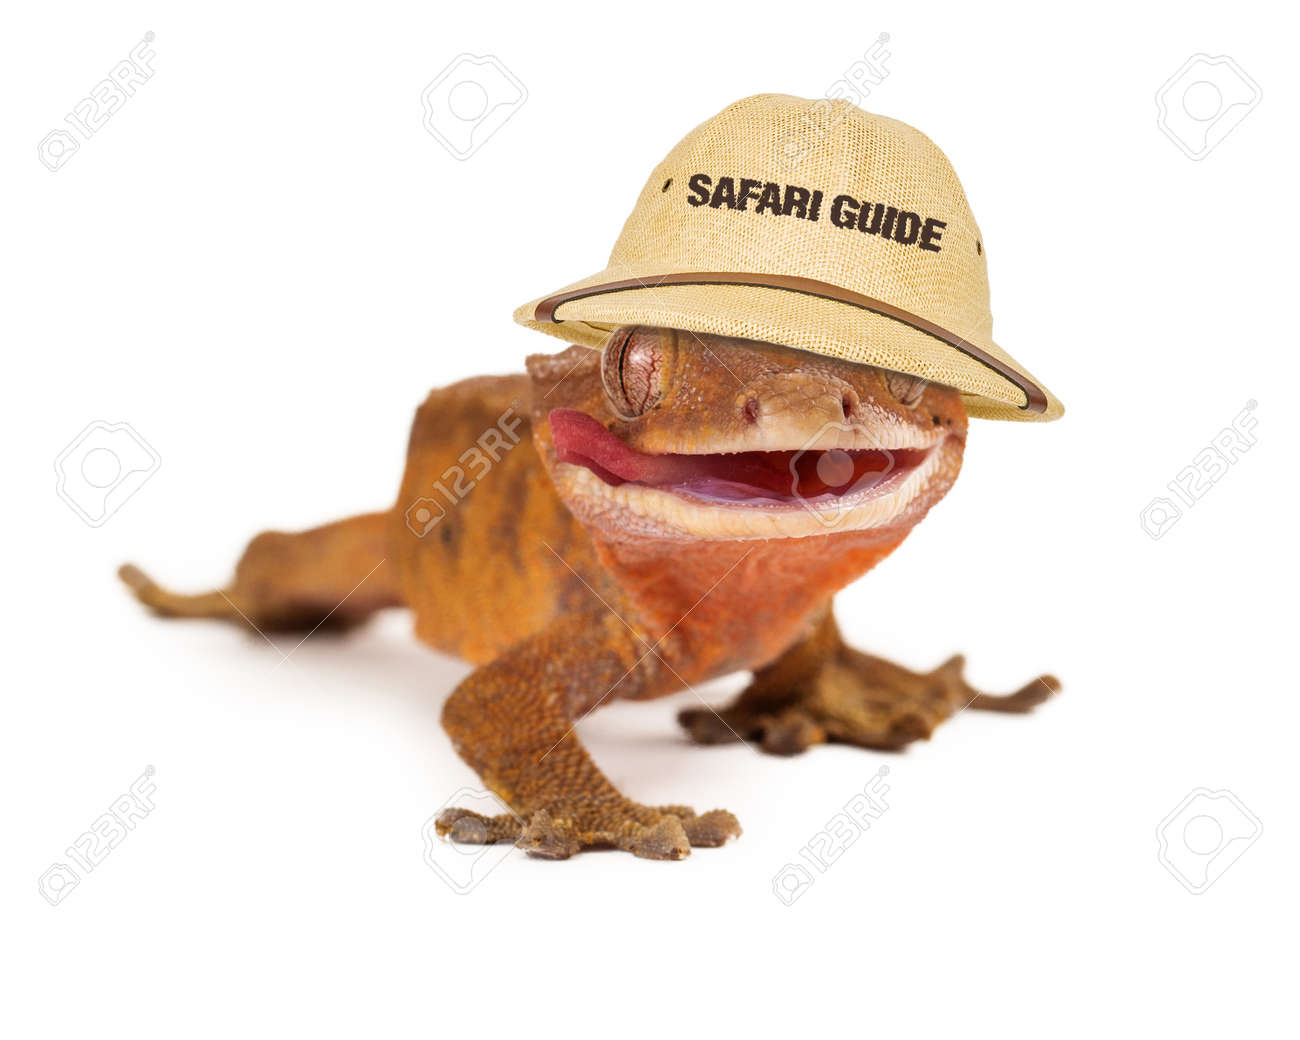 2b8427b1d27 A funny crested gecko wearing a safari guide hat Stock Photo - 36915873